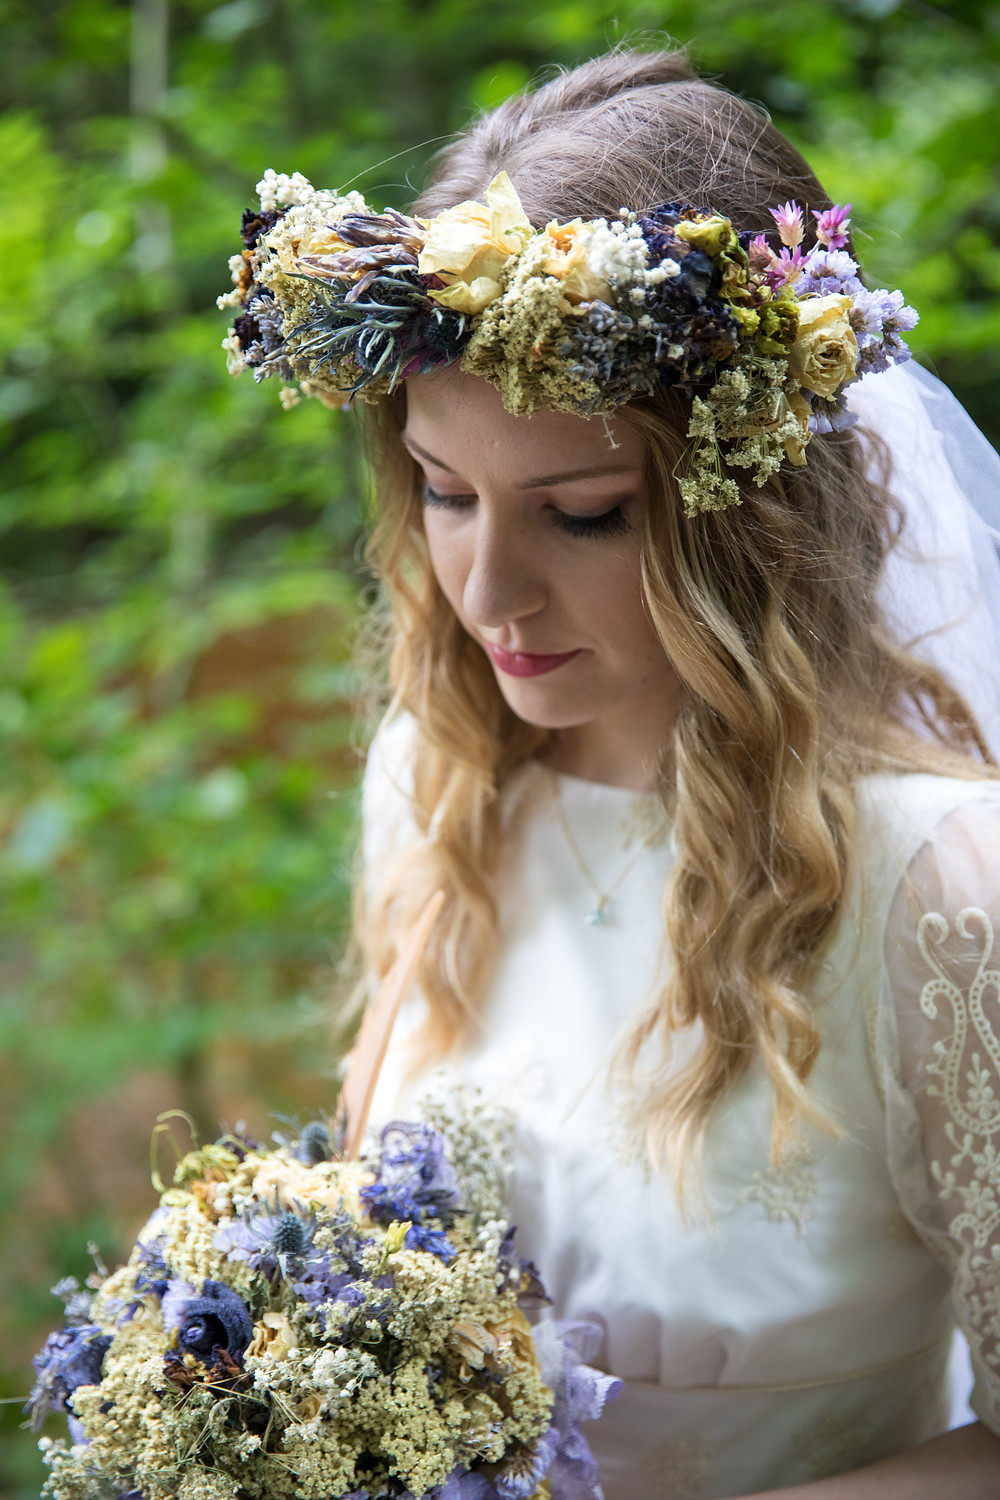 Wedding photography of bride's flower crown